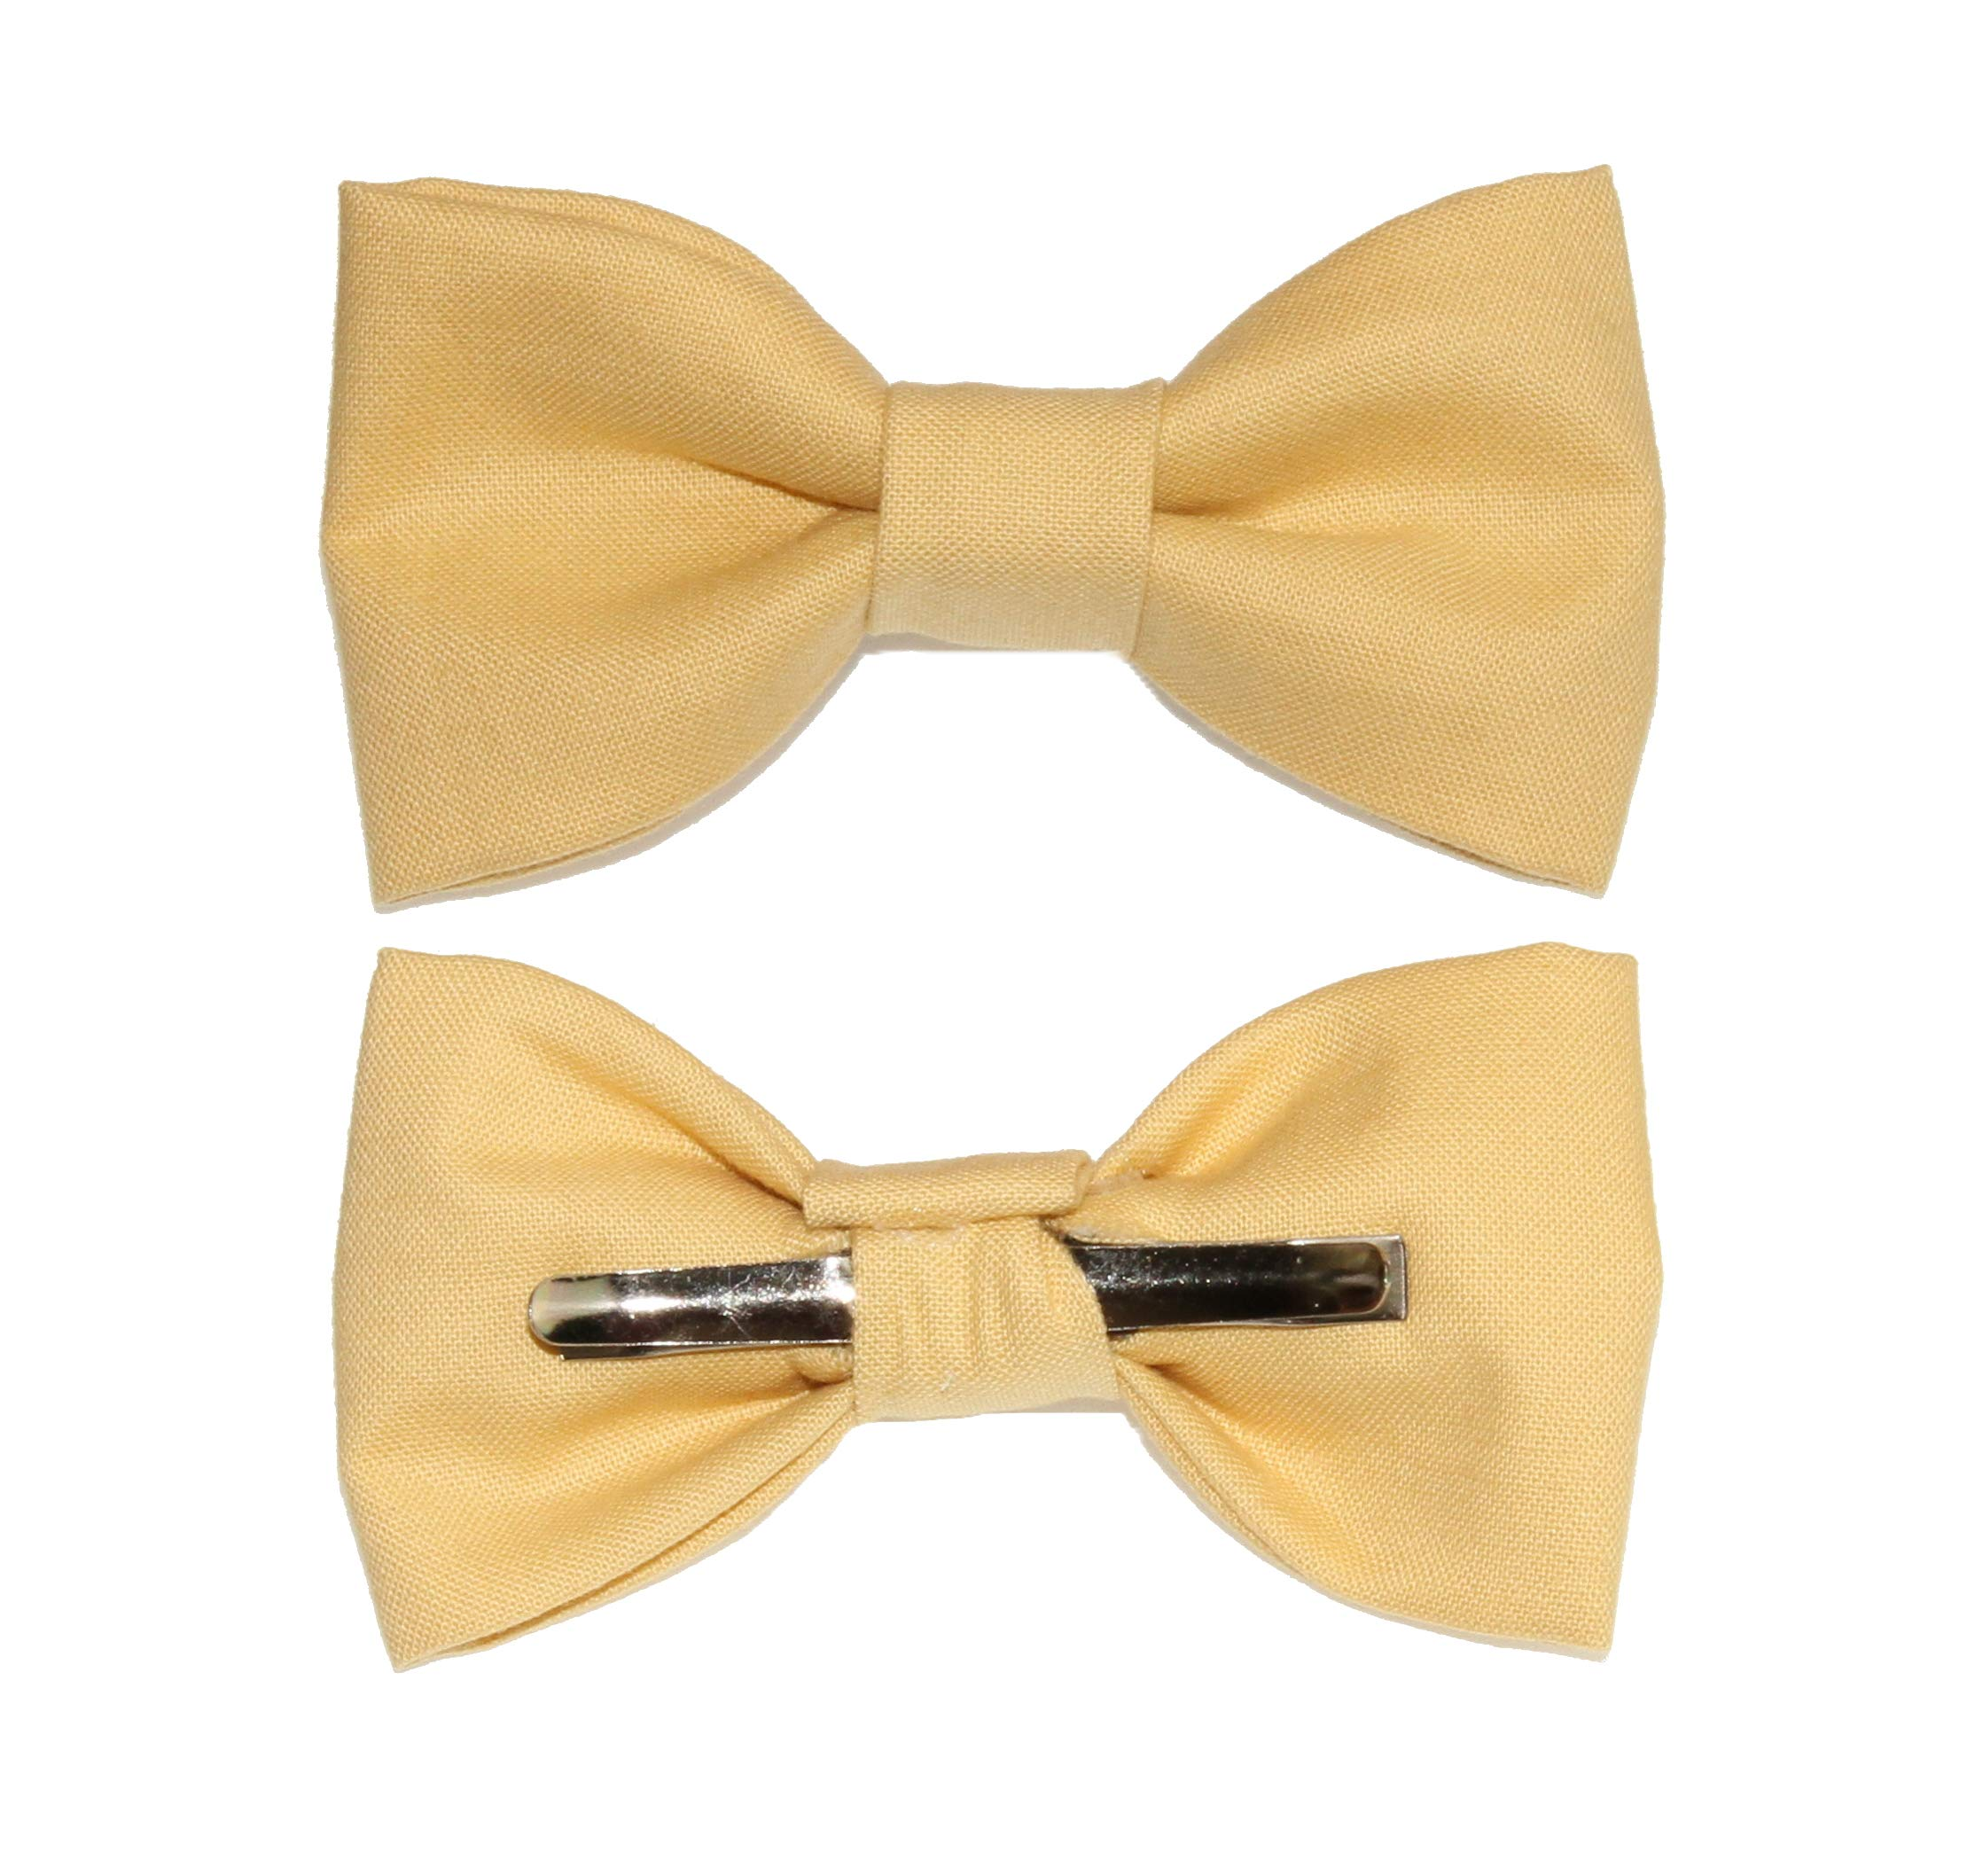 Toddler Boy 3T 4T Mustard Yellow Clip On Cotton Bow Tie - Made In The USA